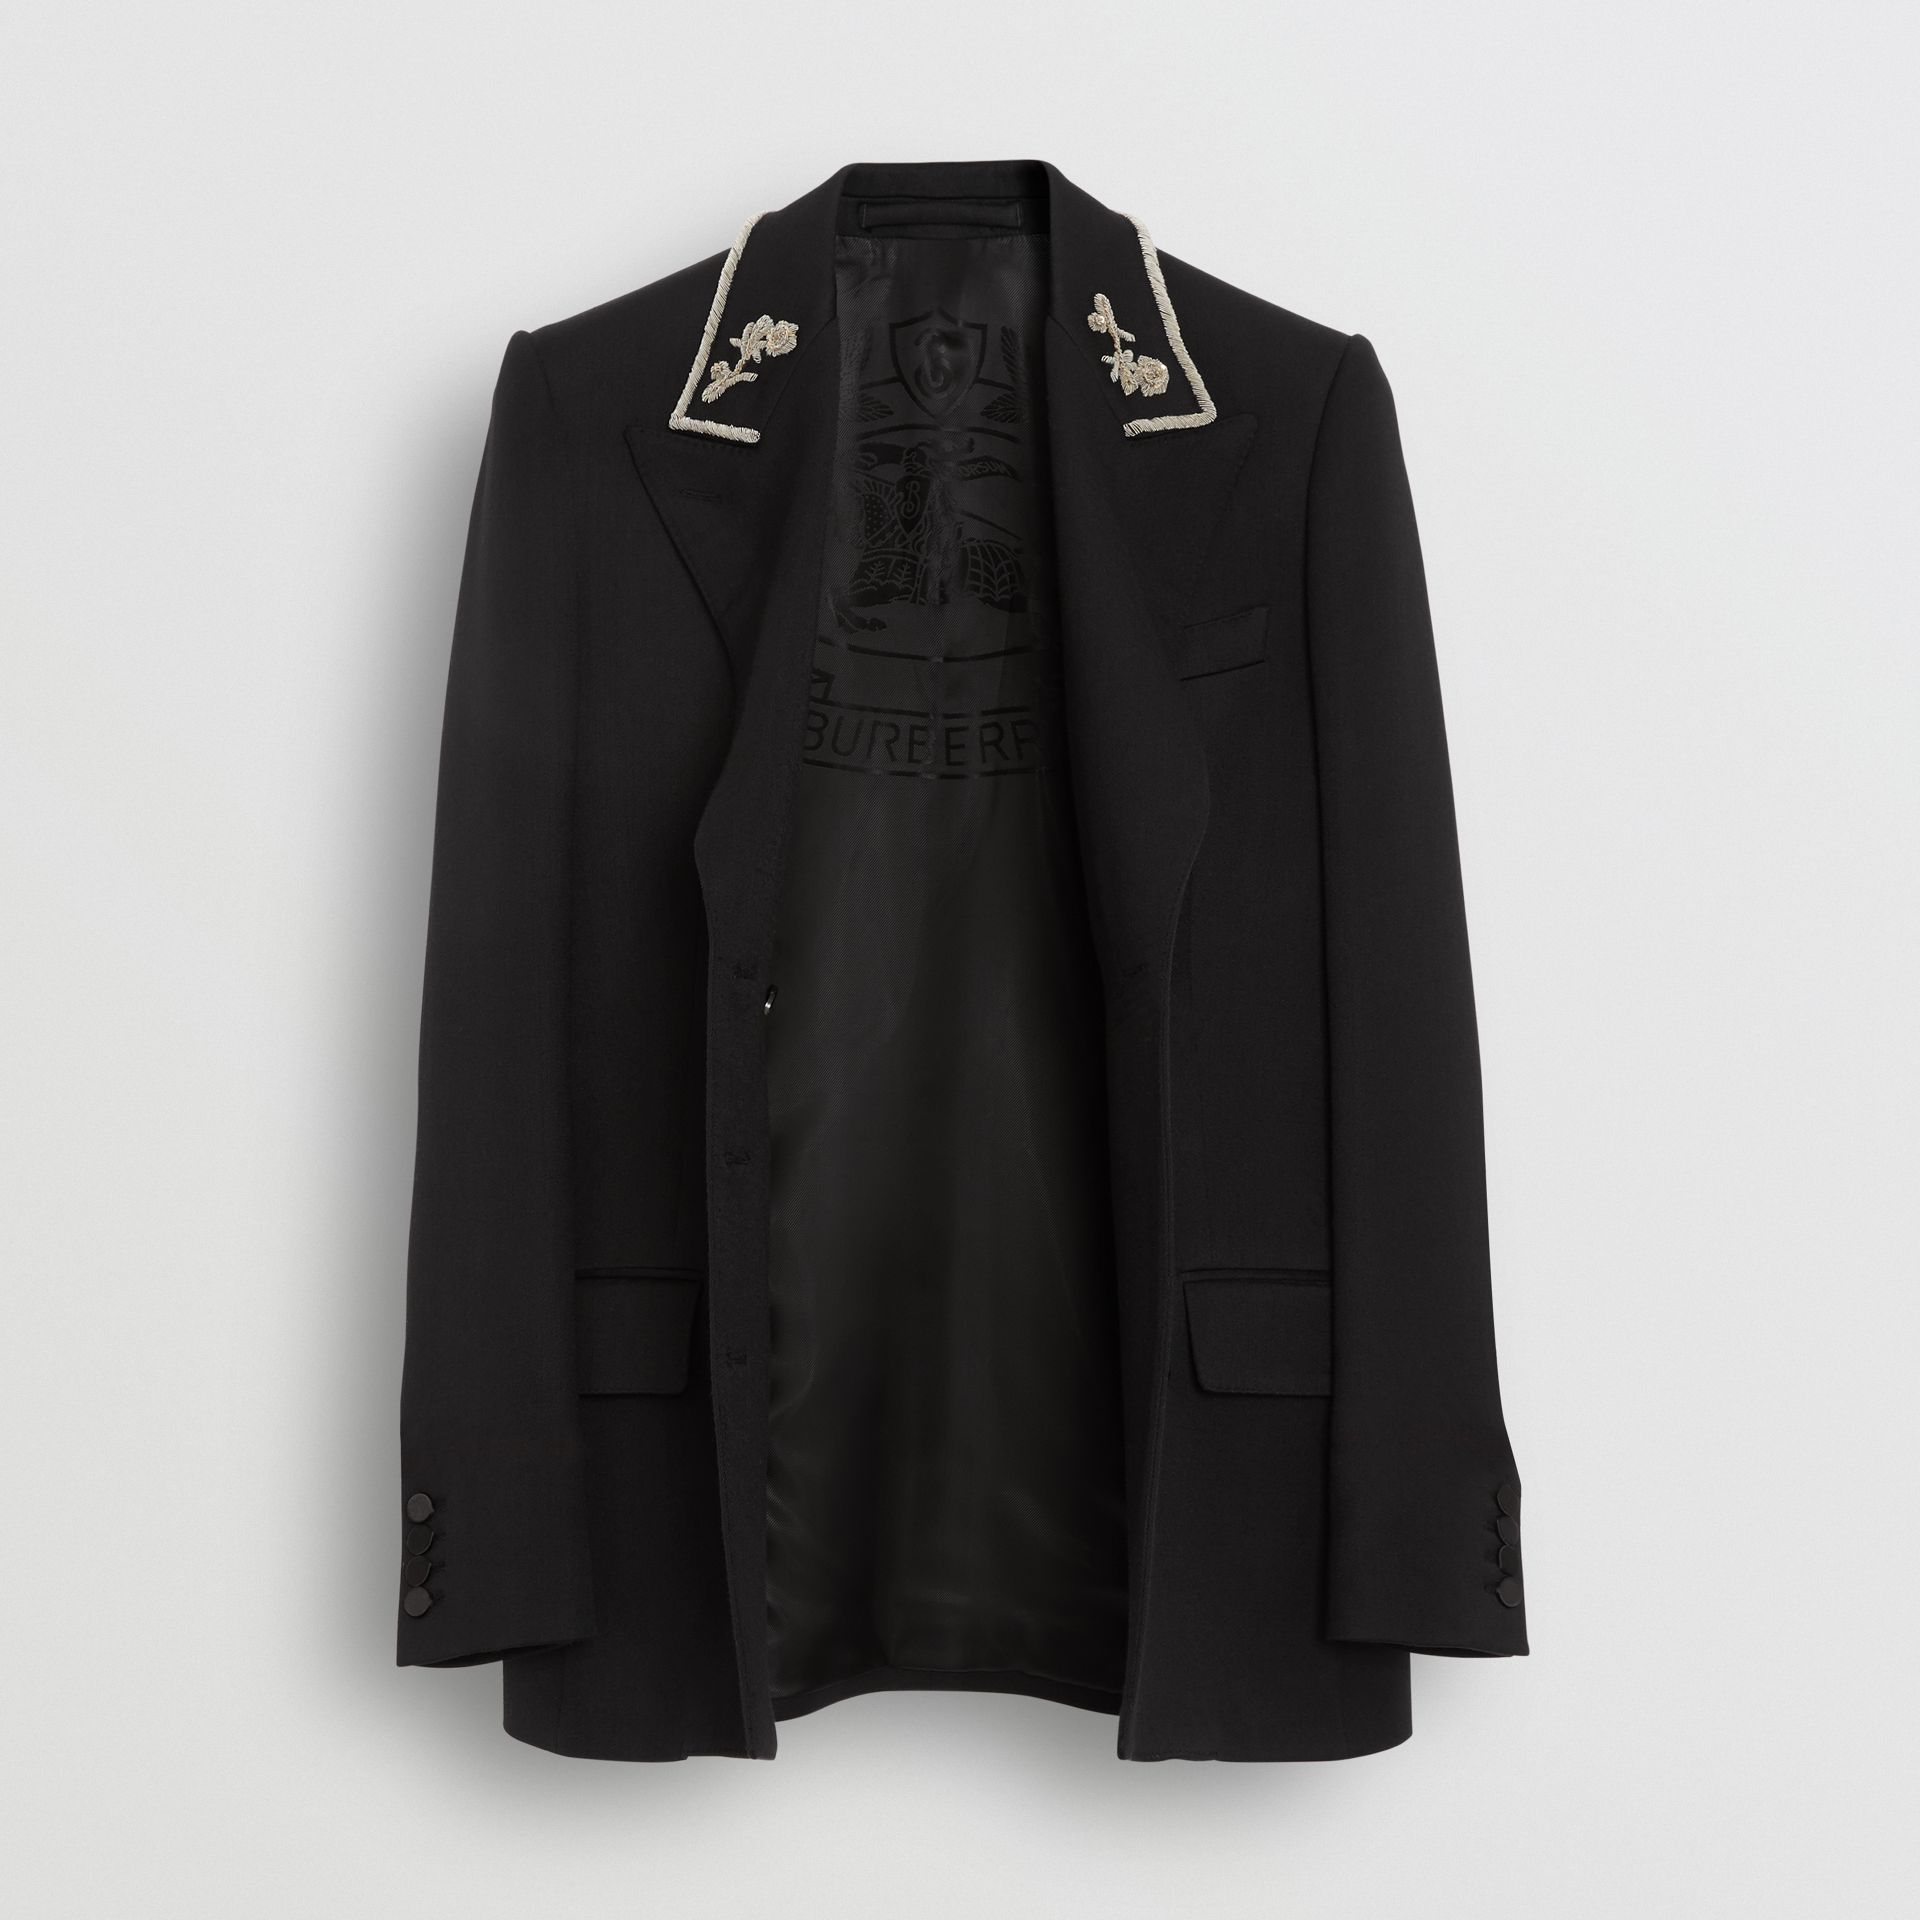 Bullion Stretch Wool Double-breasted Jacket in Black - Women | Burberry United States - gallery image 5